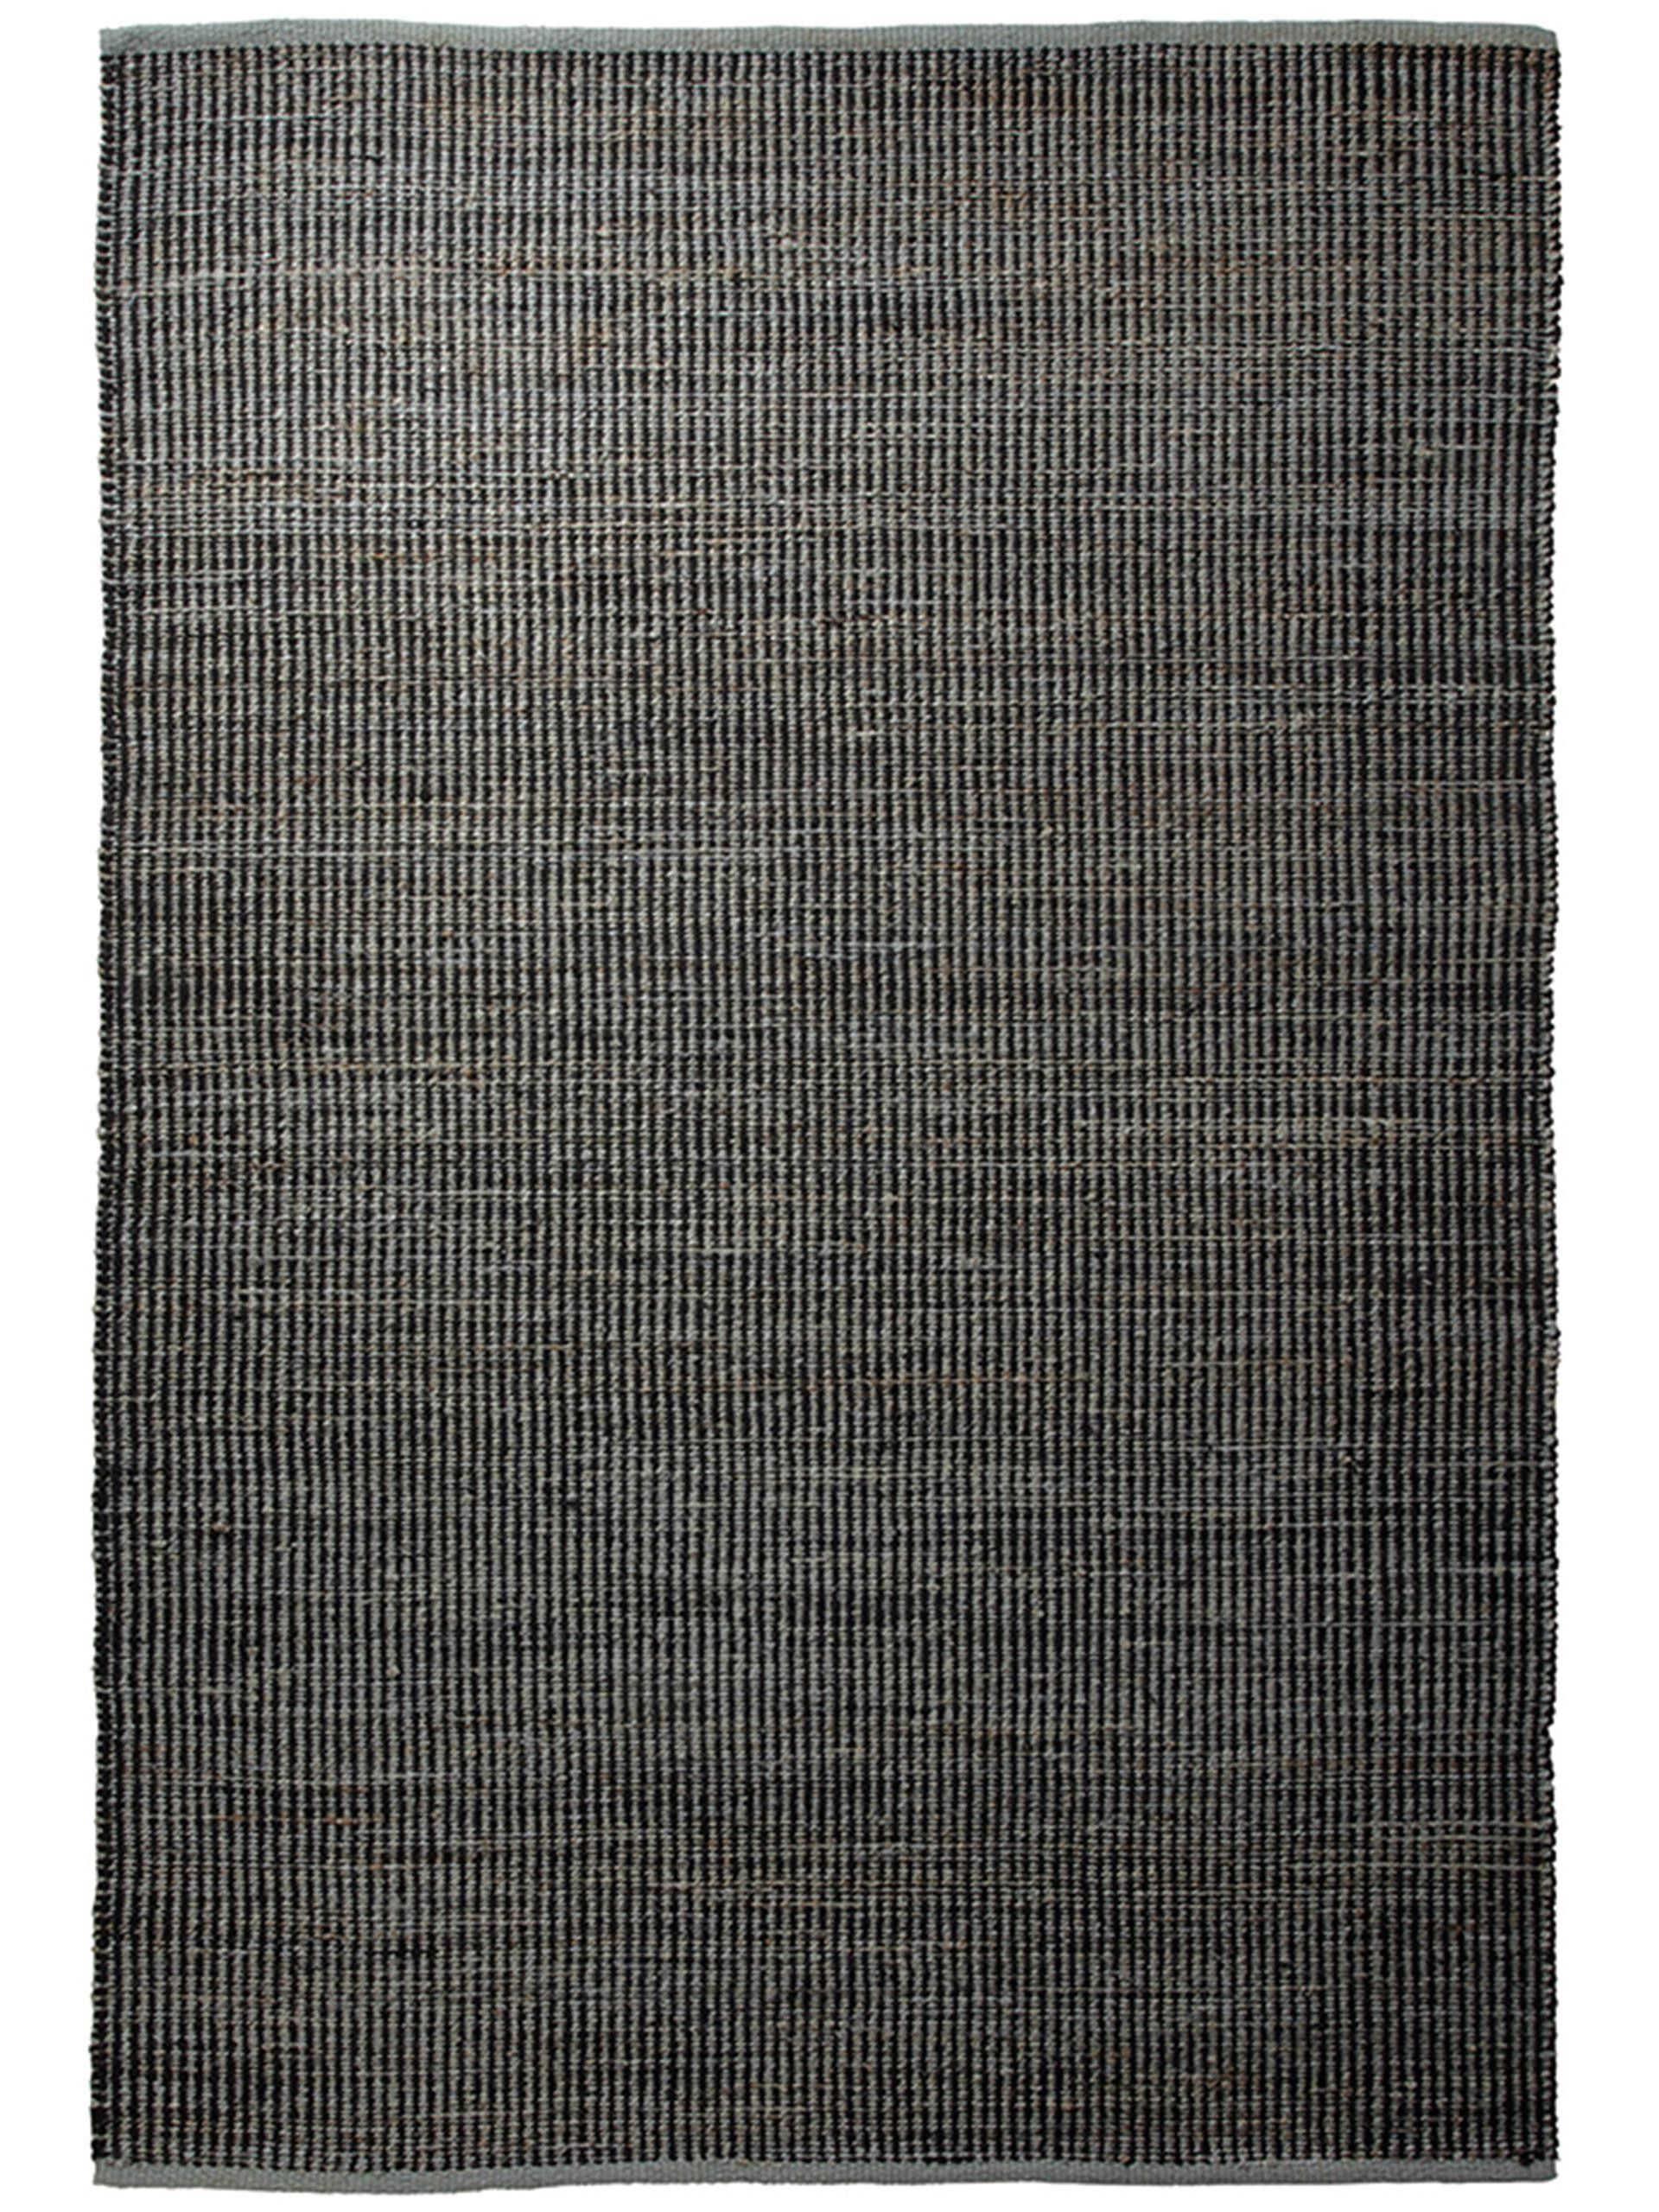 Esprit Gobi Flat Weave Rug Order Favourable Online